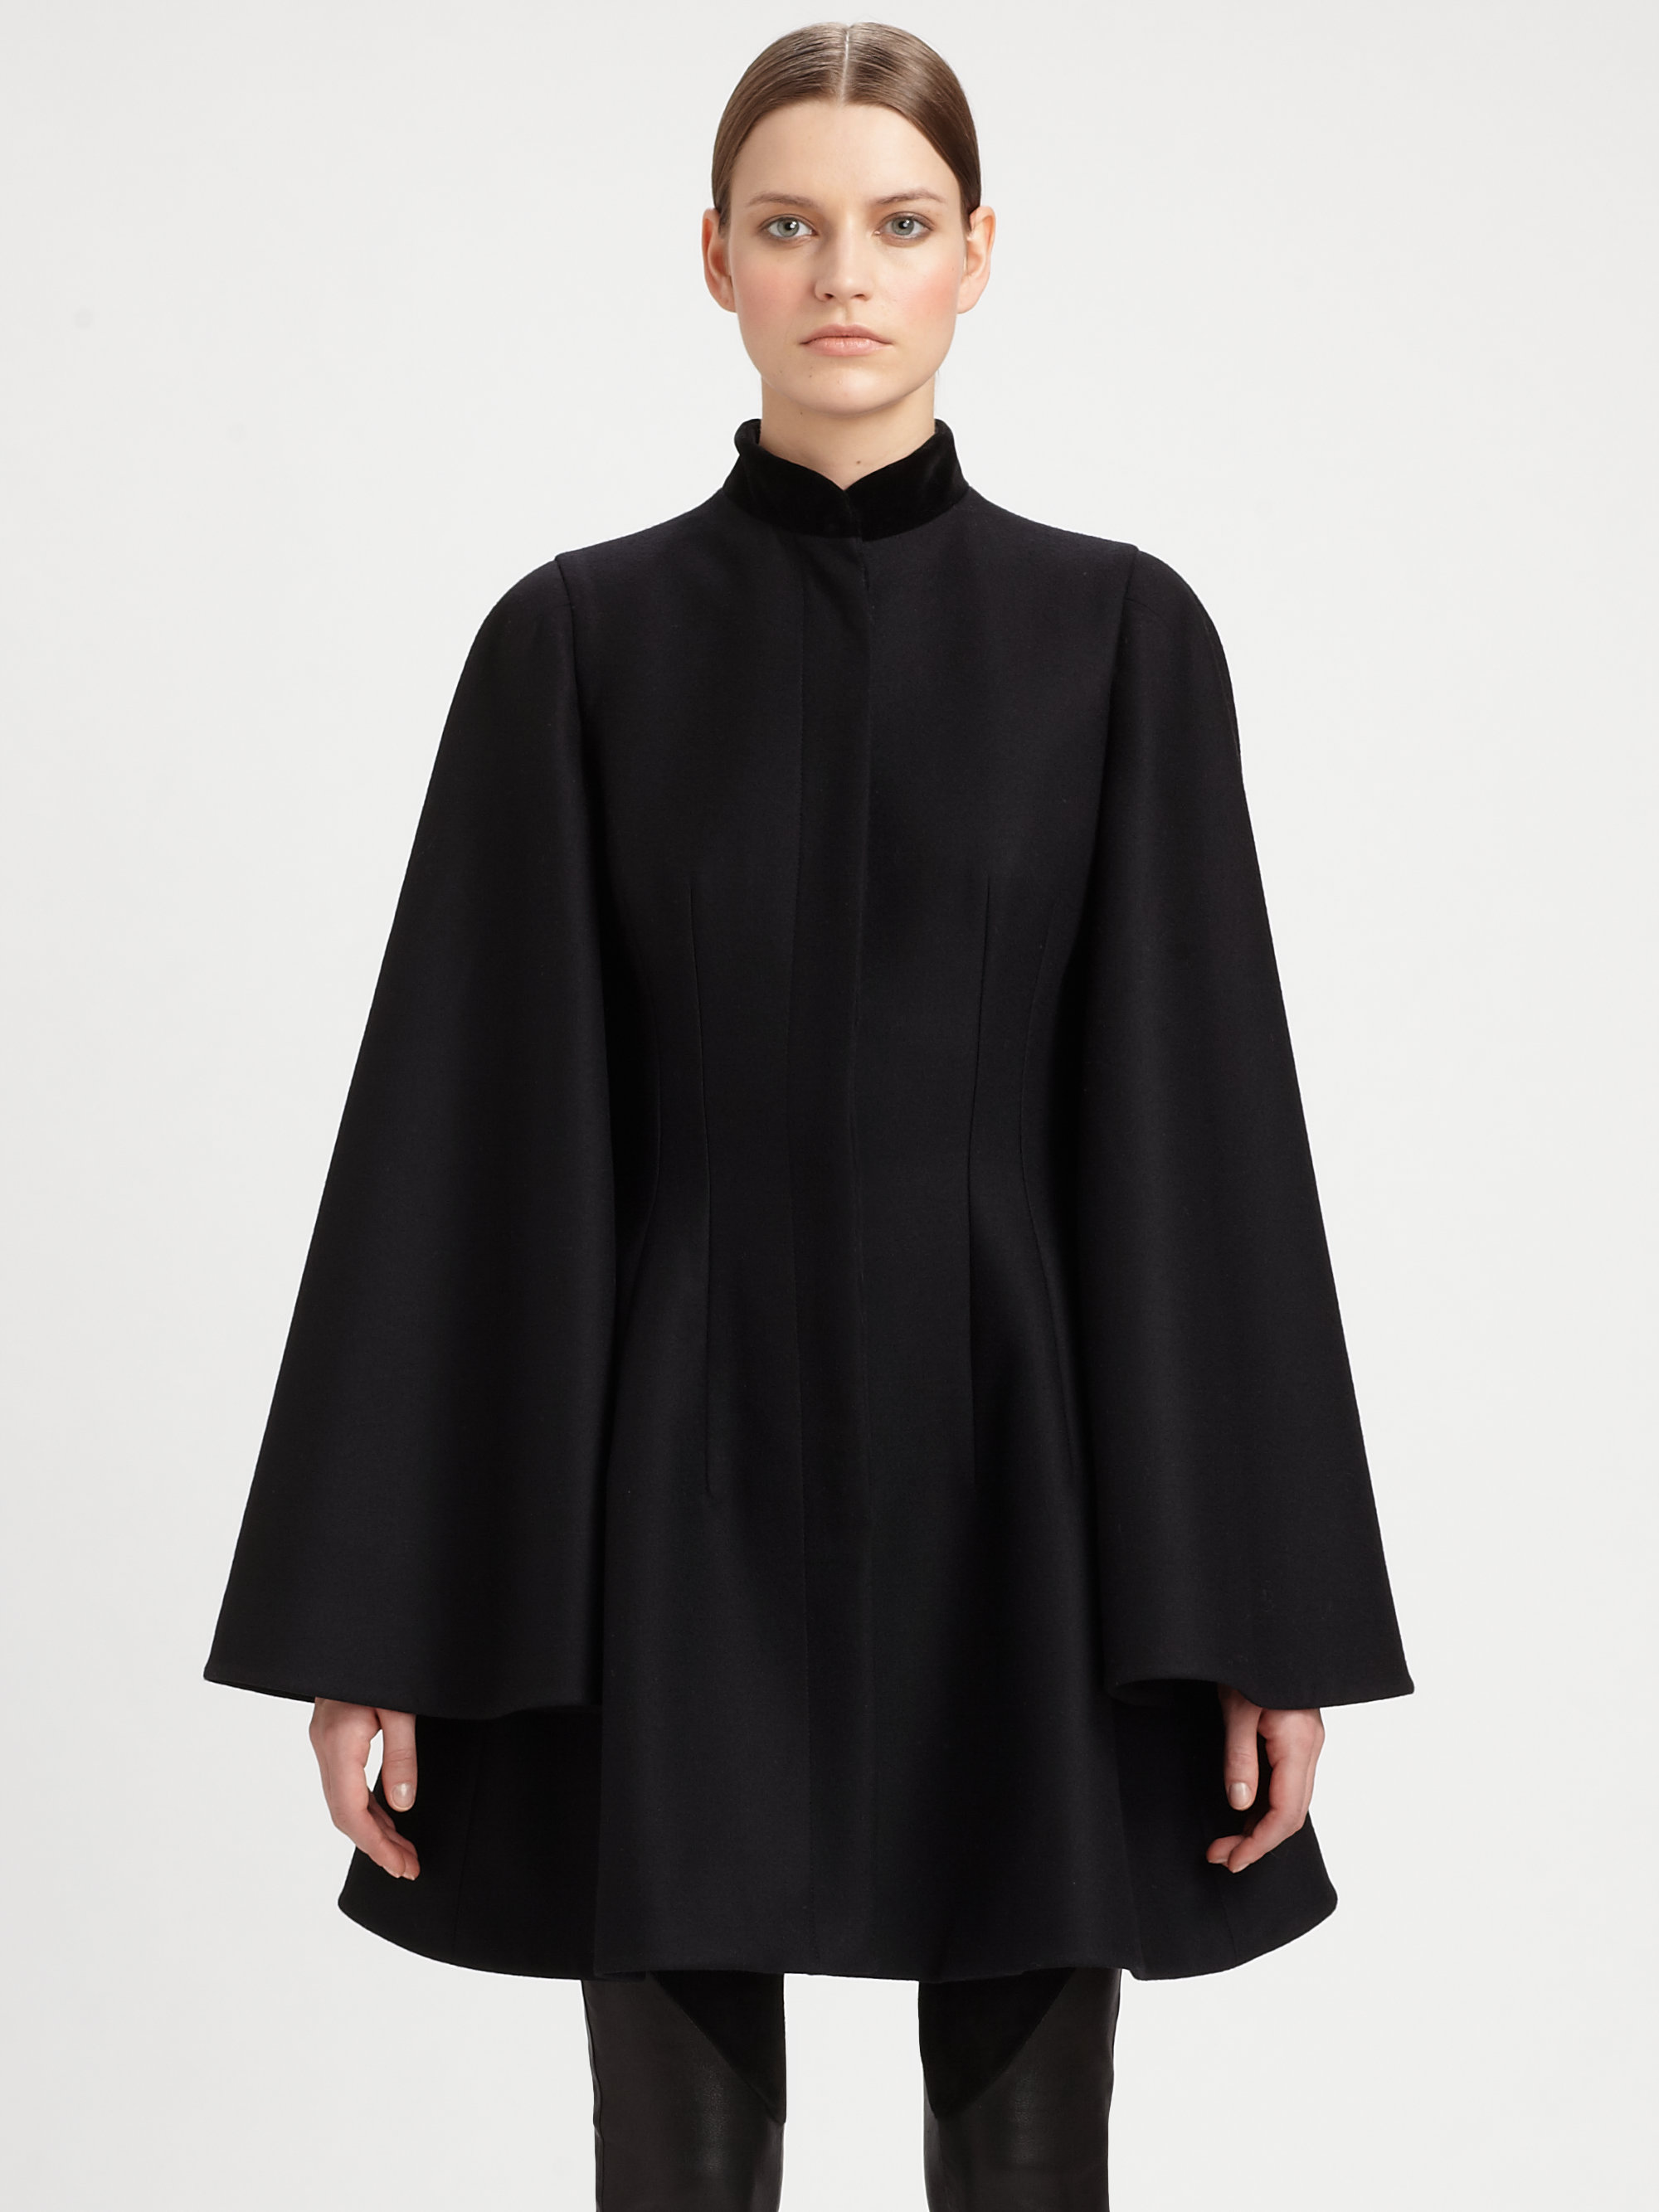 Find black cape jacket at ShopStyle. Shop the latest collection of black cape jacket from the most popular stores - all in one place.